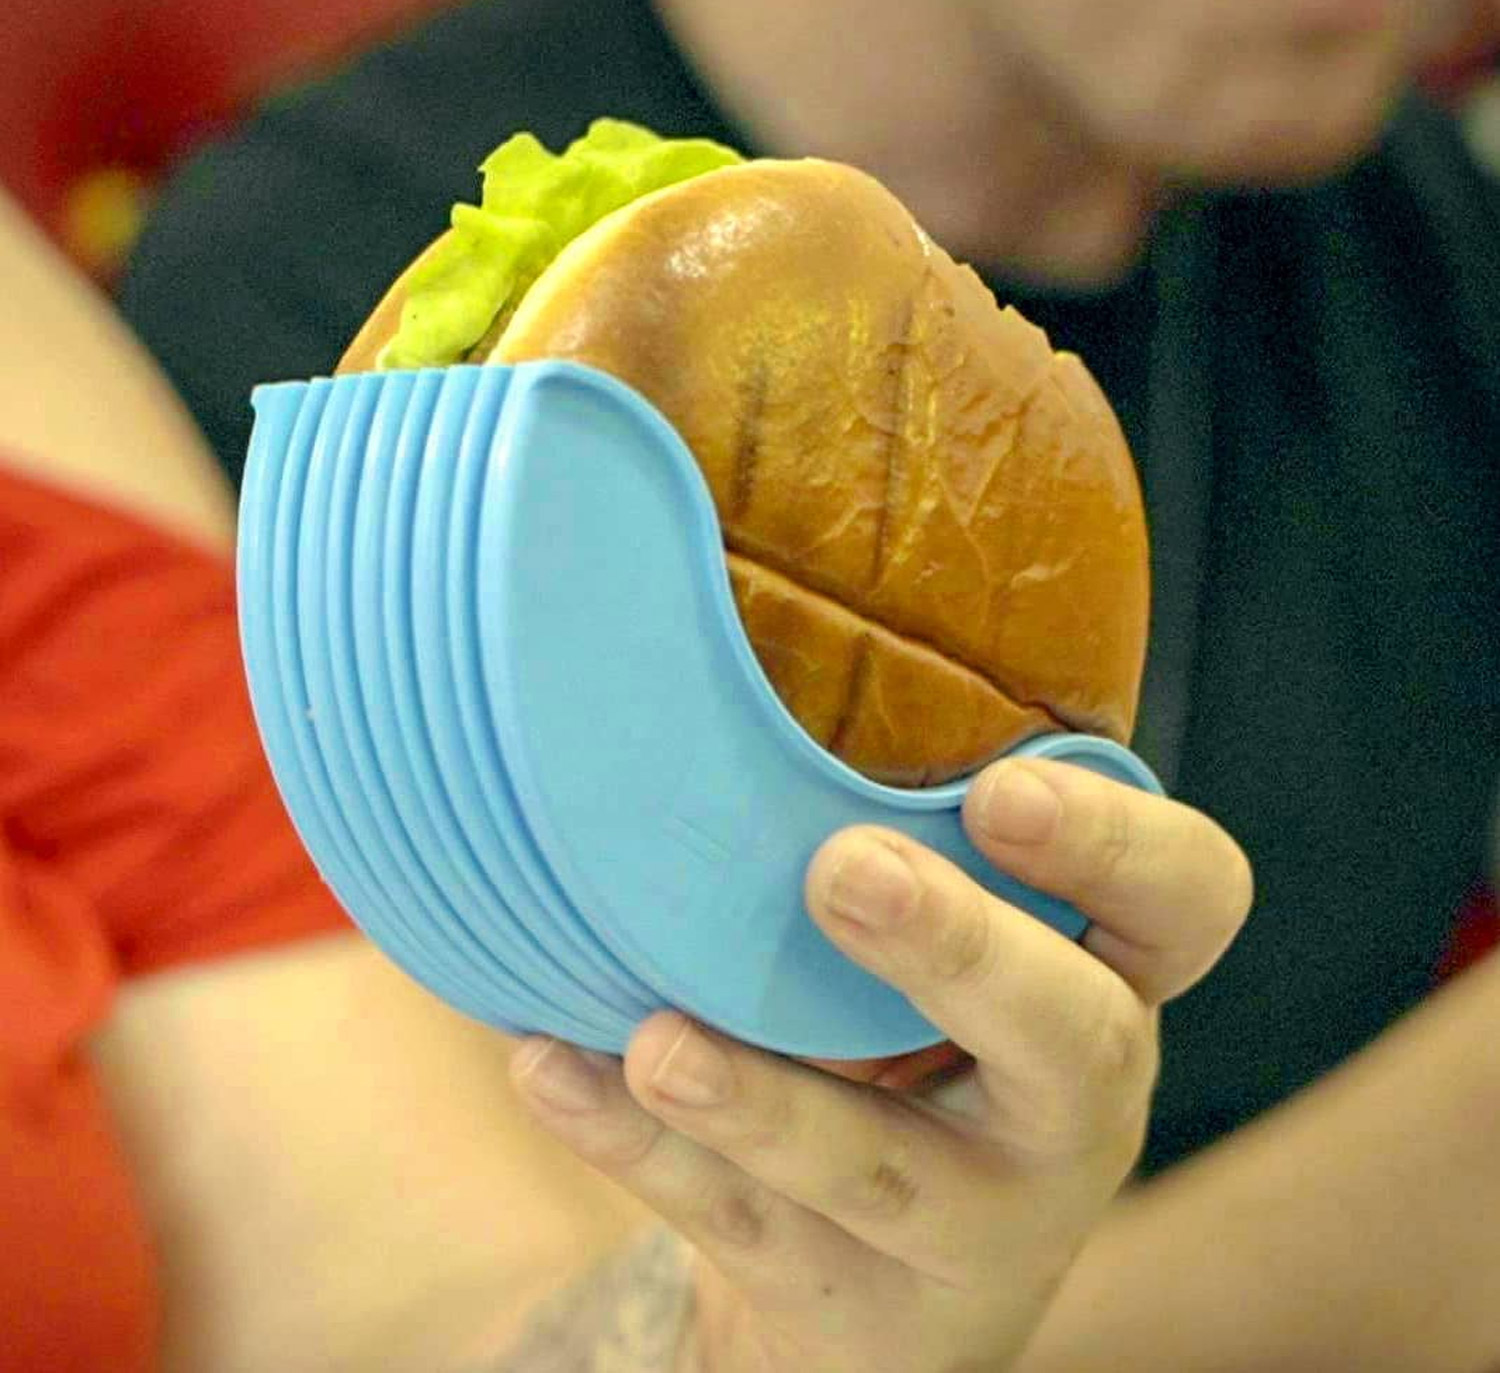 Hamburger Holder Prevents Juices and Sauces From Making a Mess